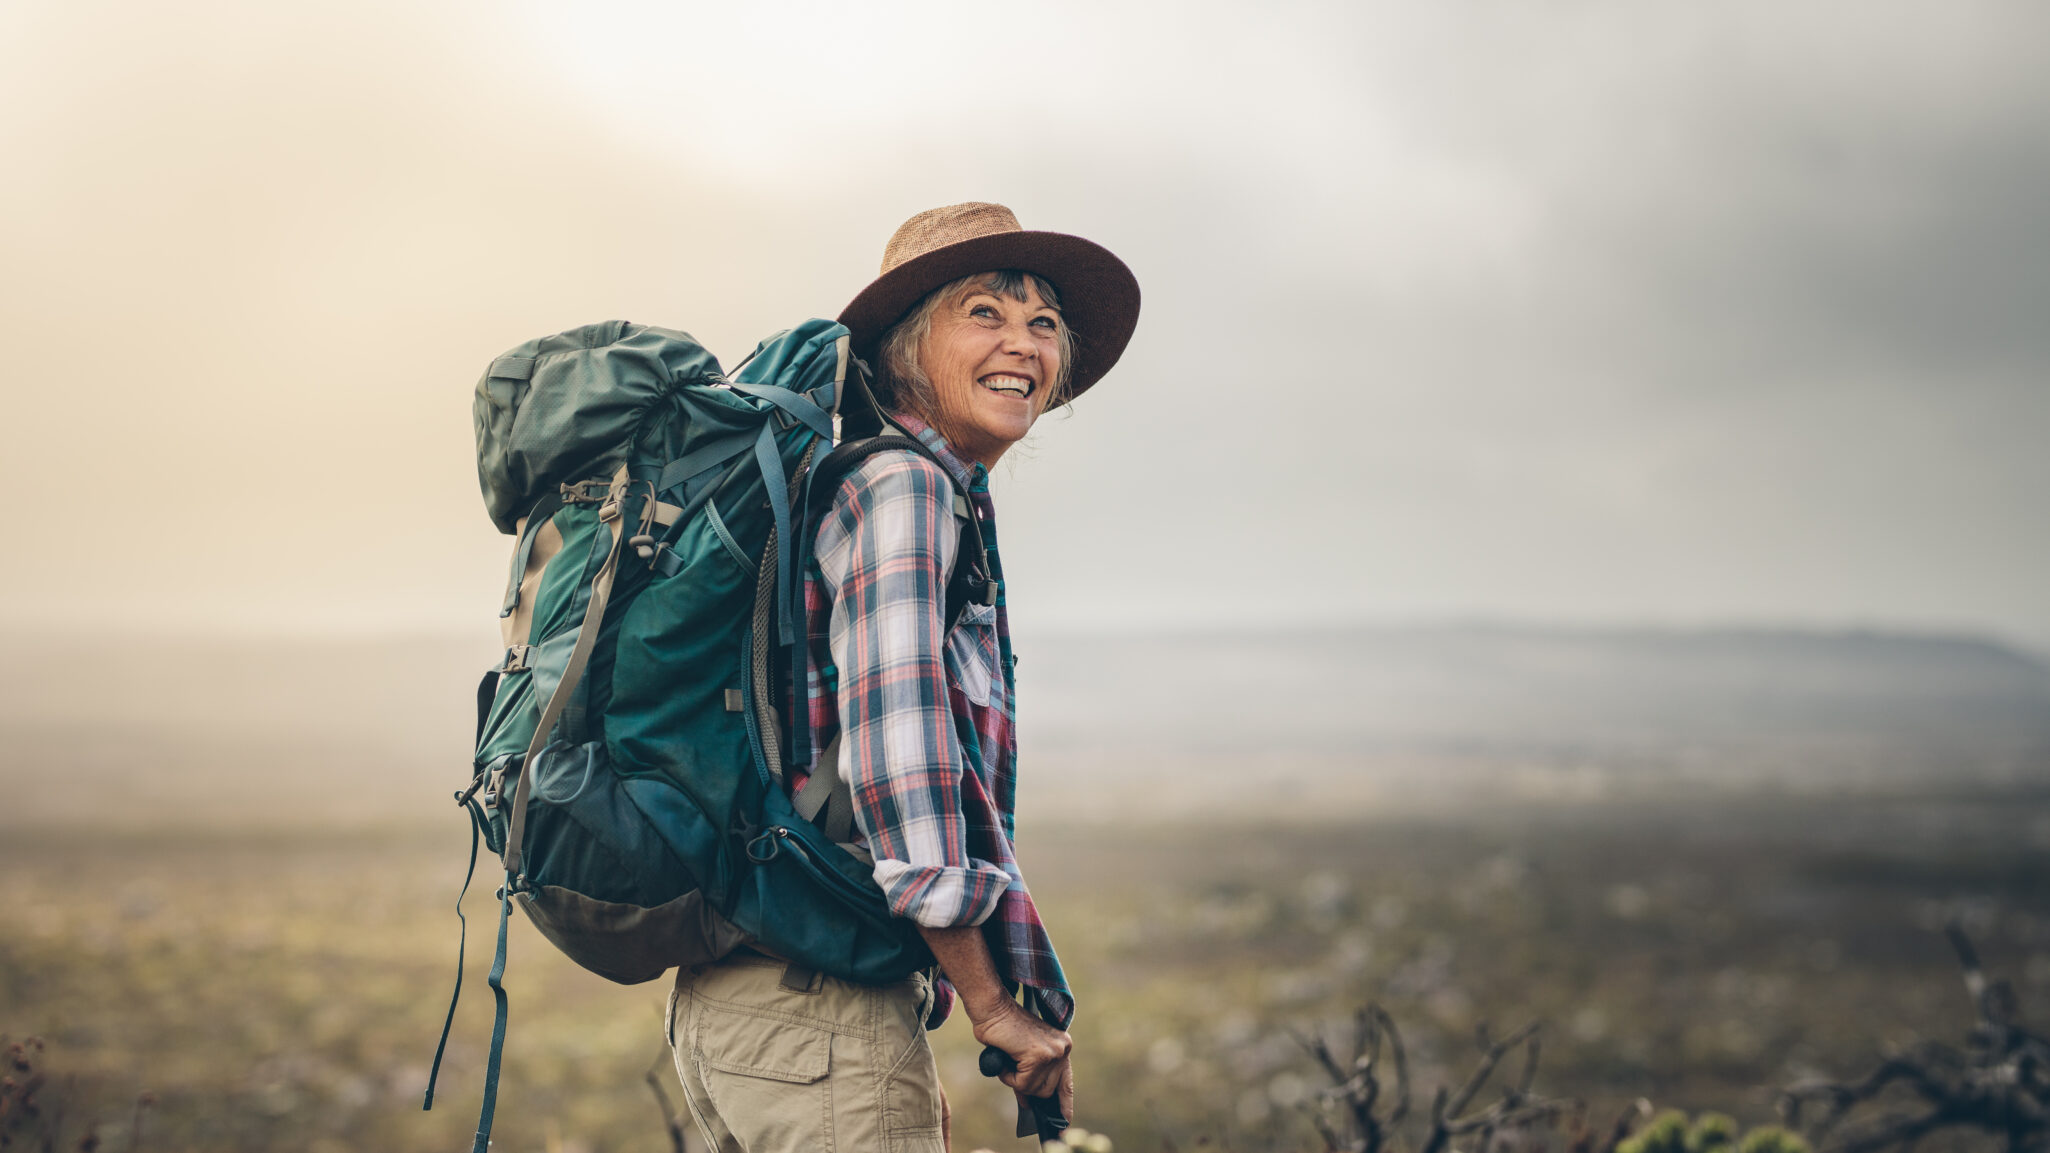 Senior walking on trail with hiking backpack on